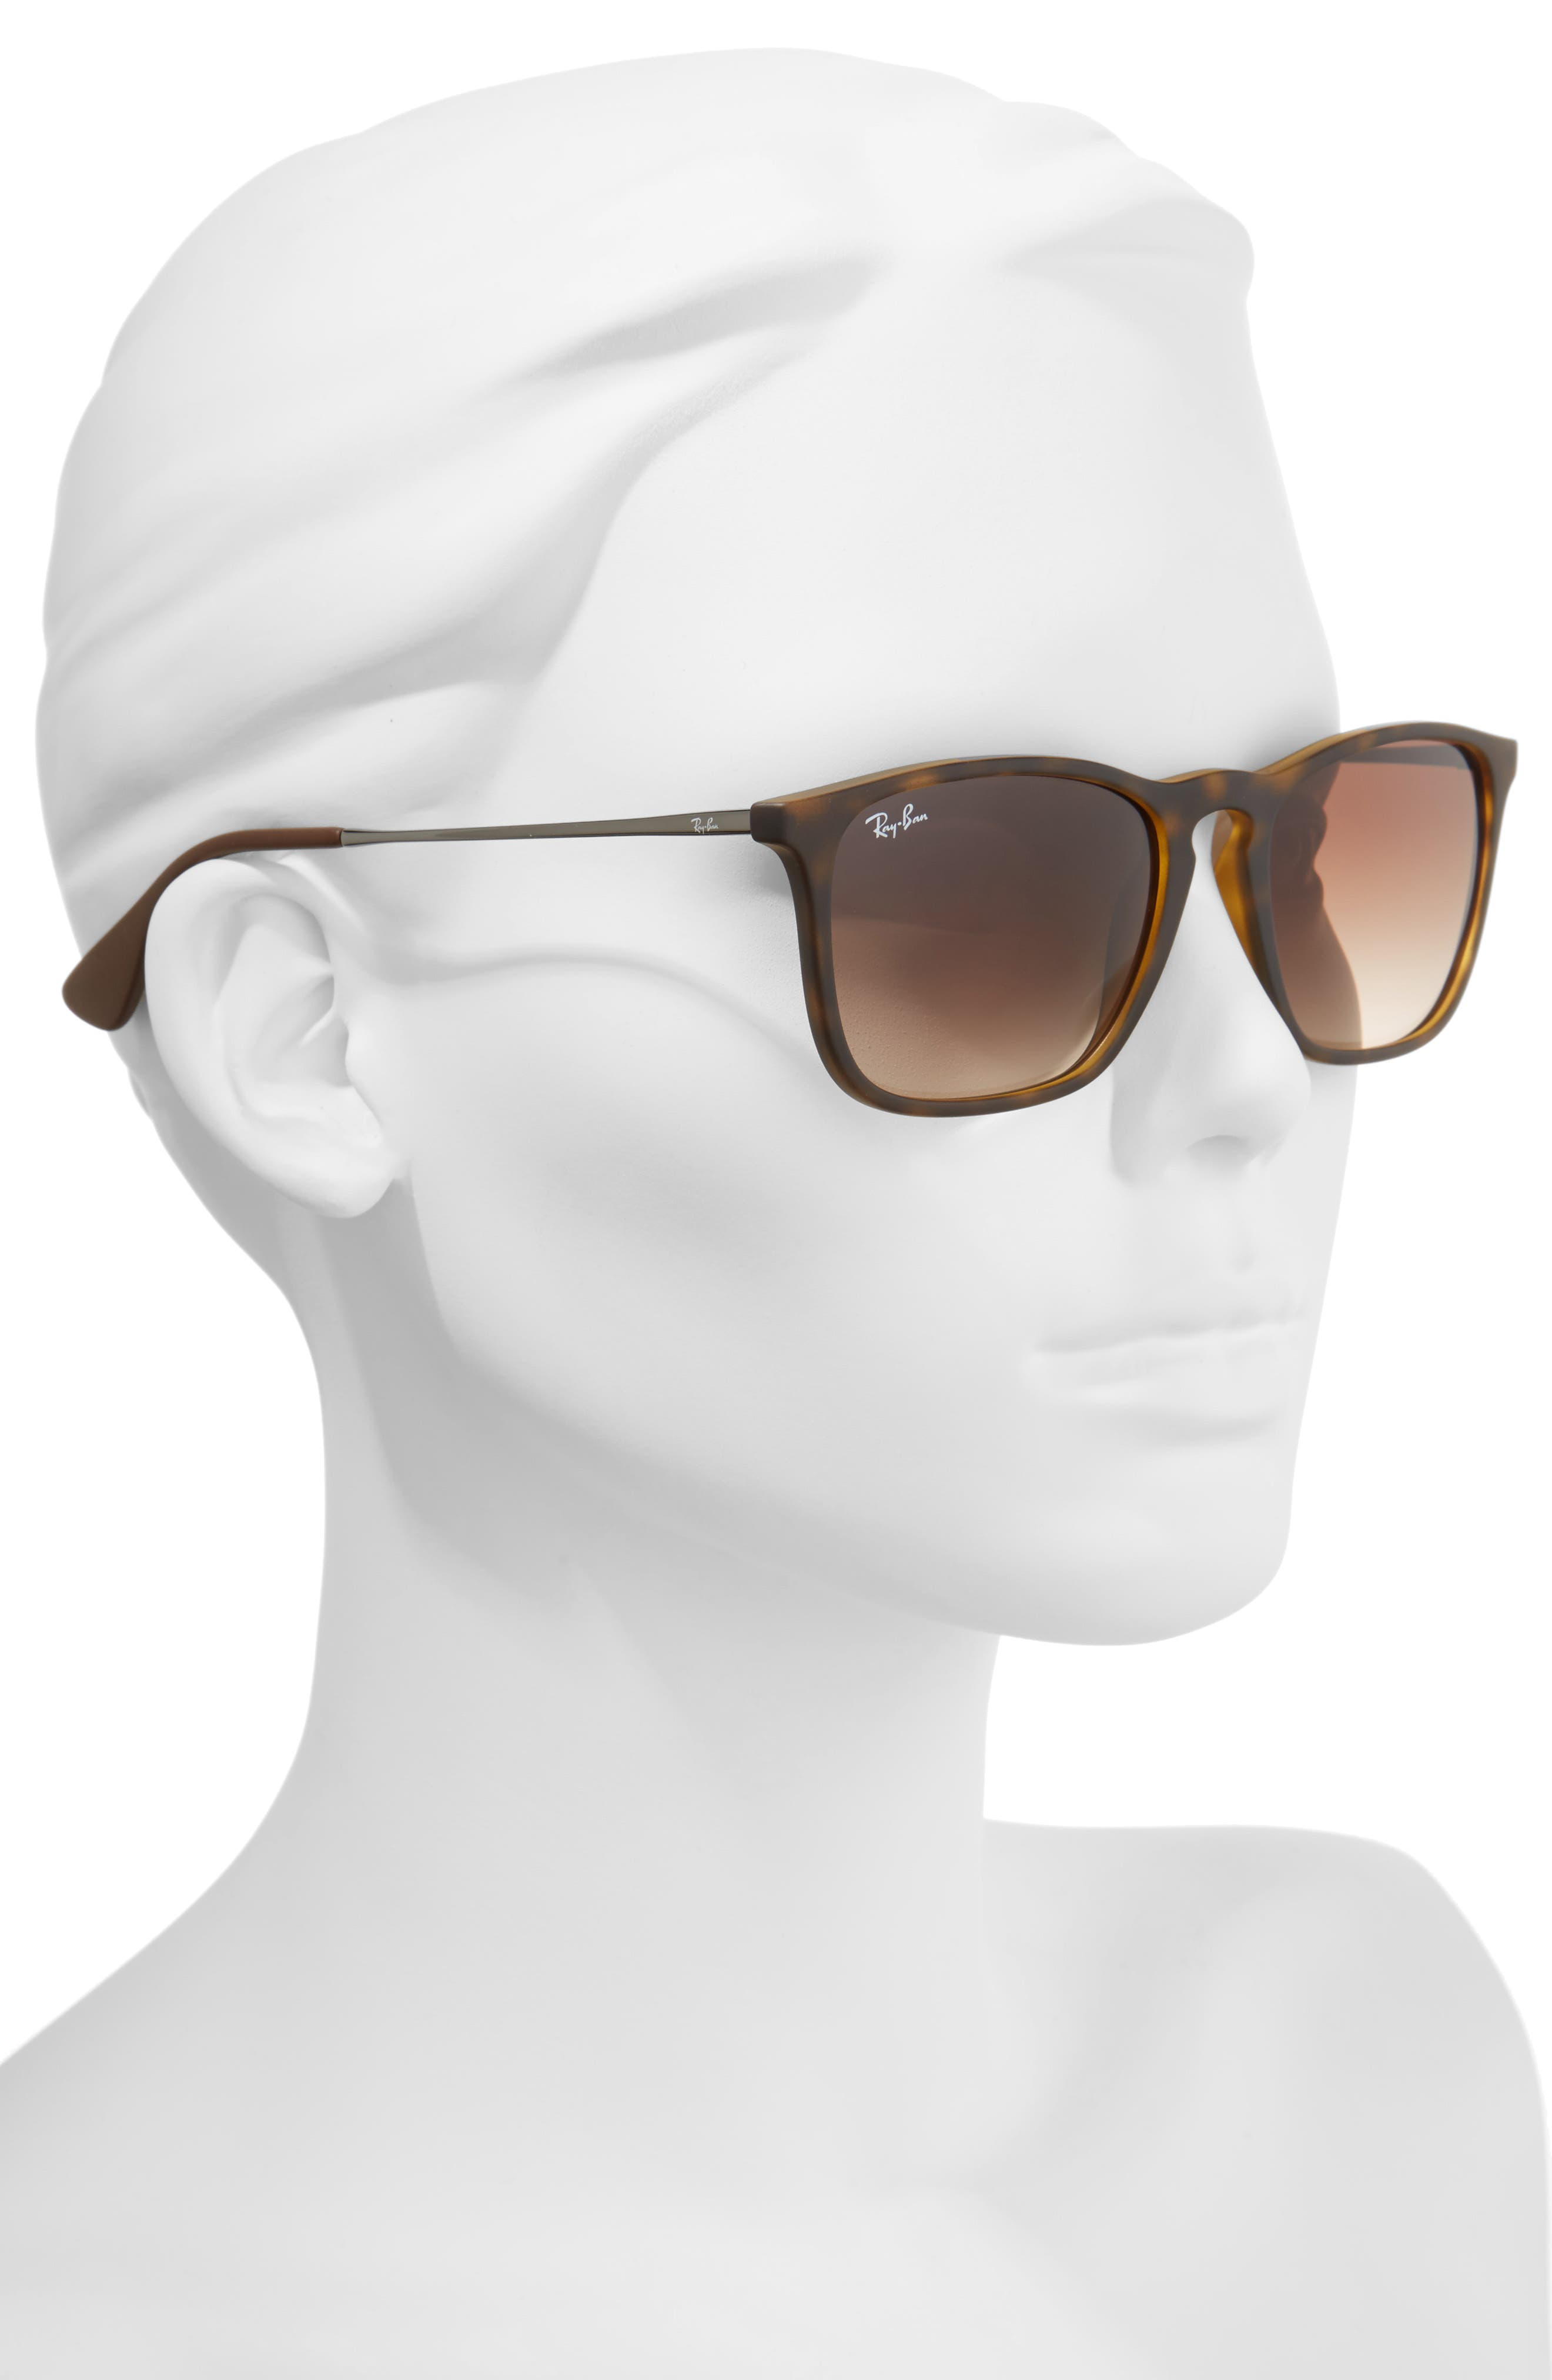 Youngster 54mm Square Keyhole Sunglasses,                             Alternate thumbnail 2, color,                             BROWN